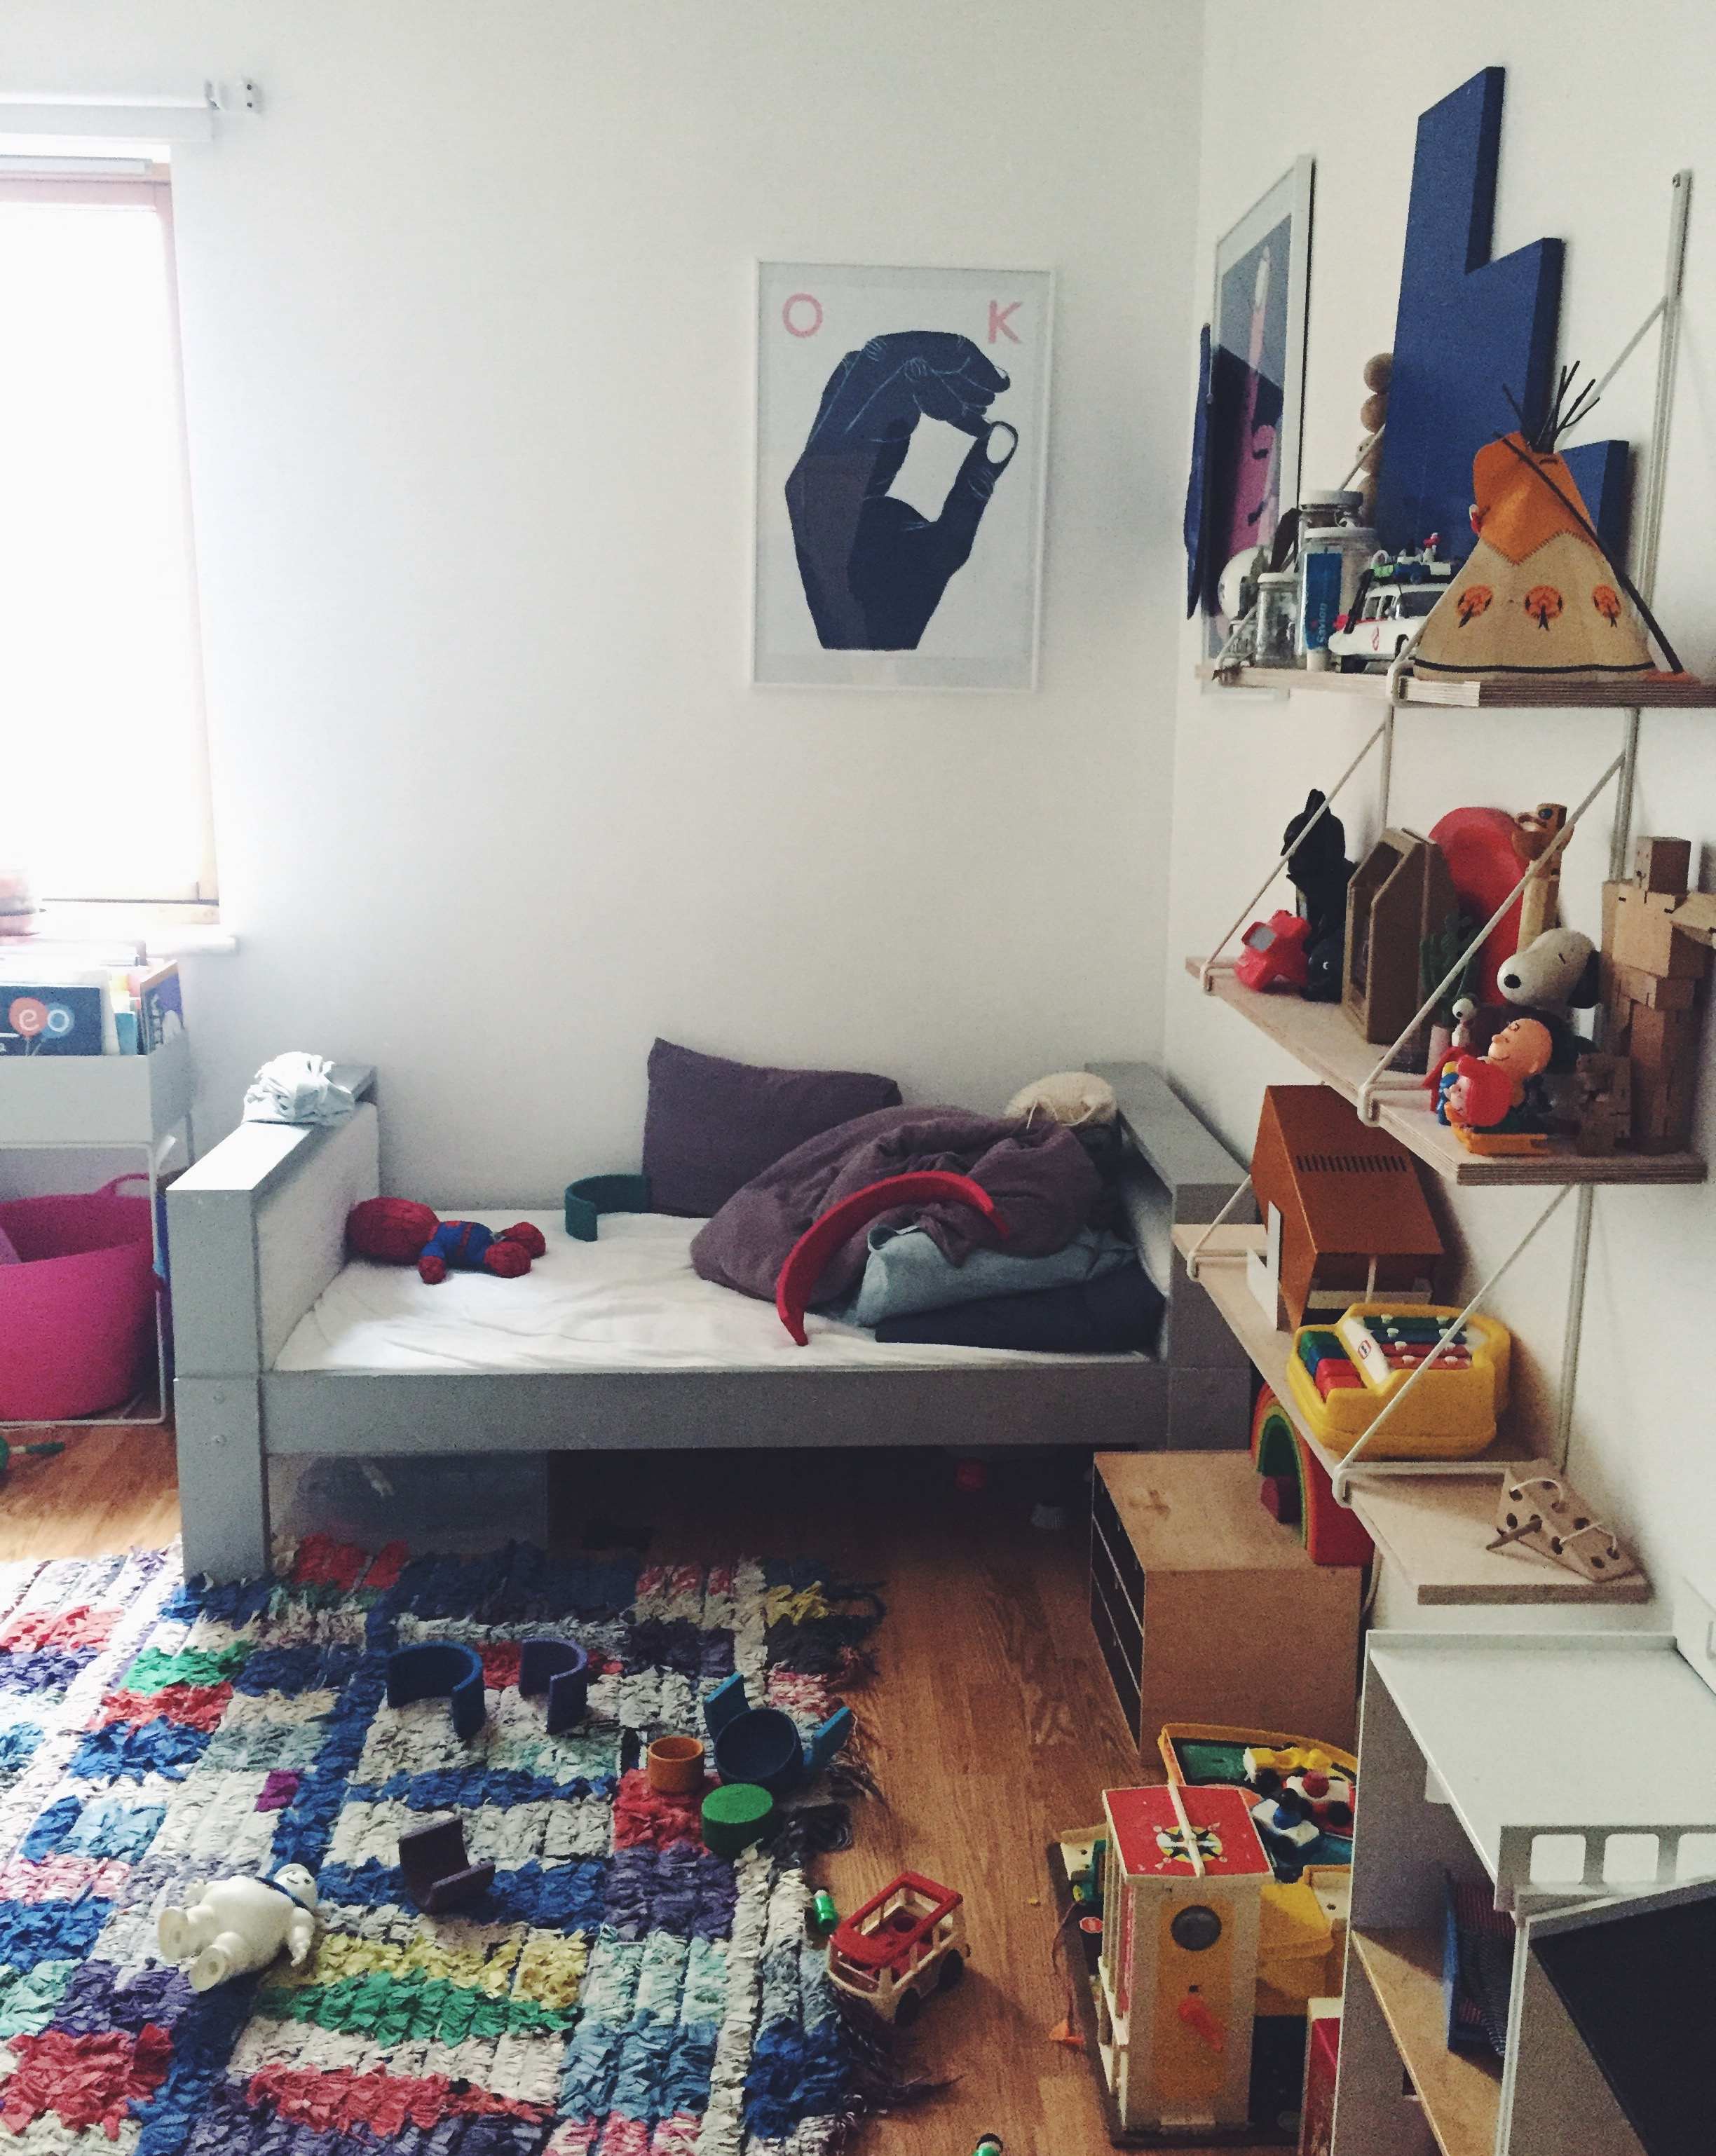 Her son's bedroom Jessica Traylen of @small.solutions__